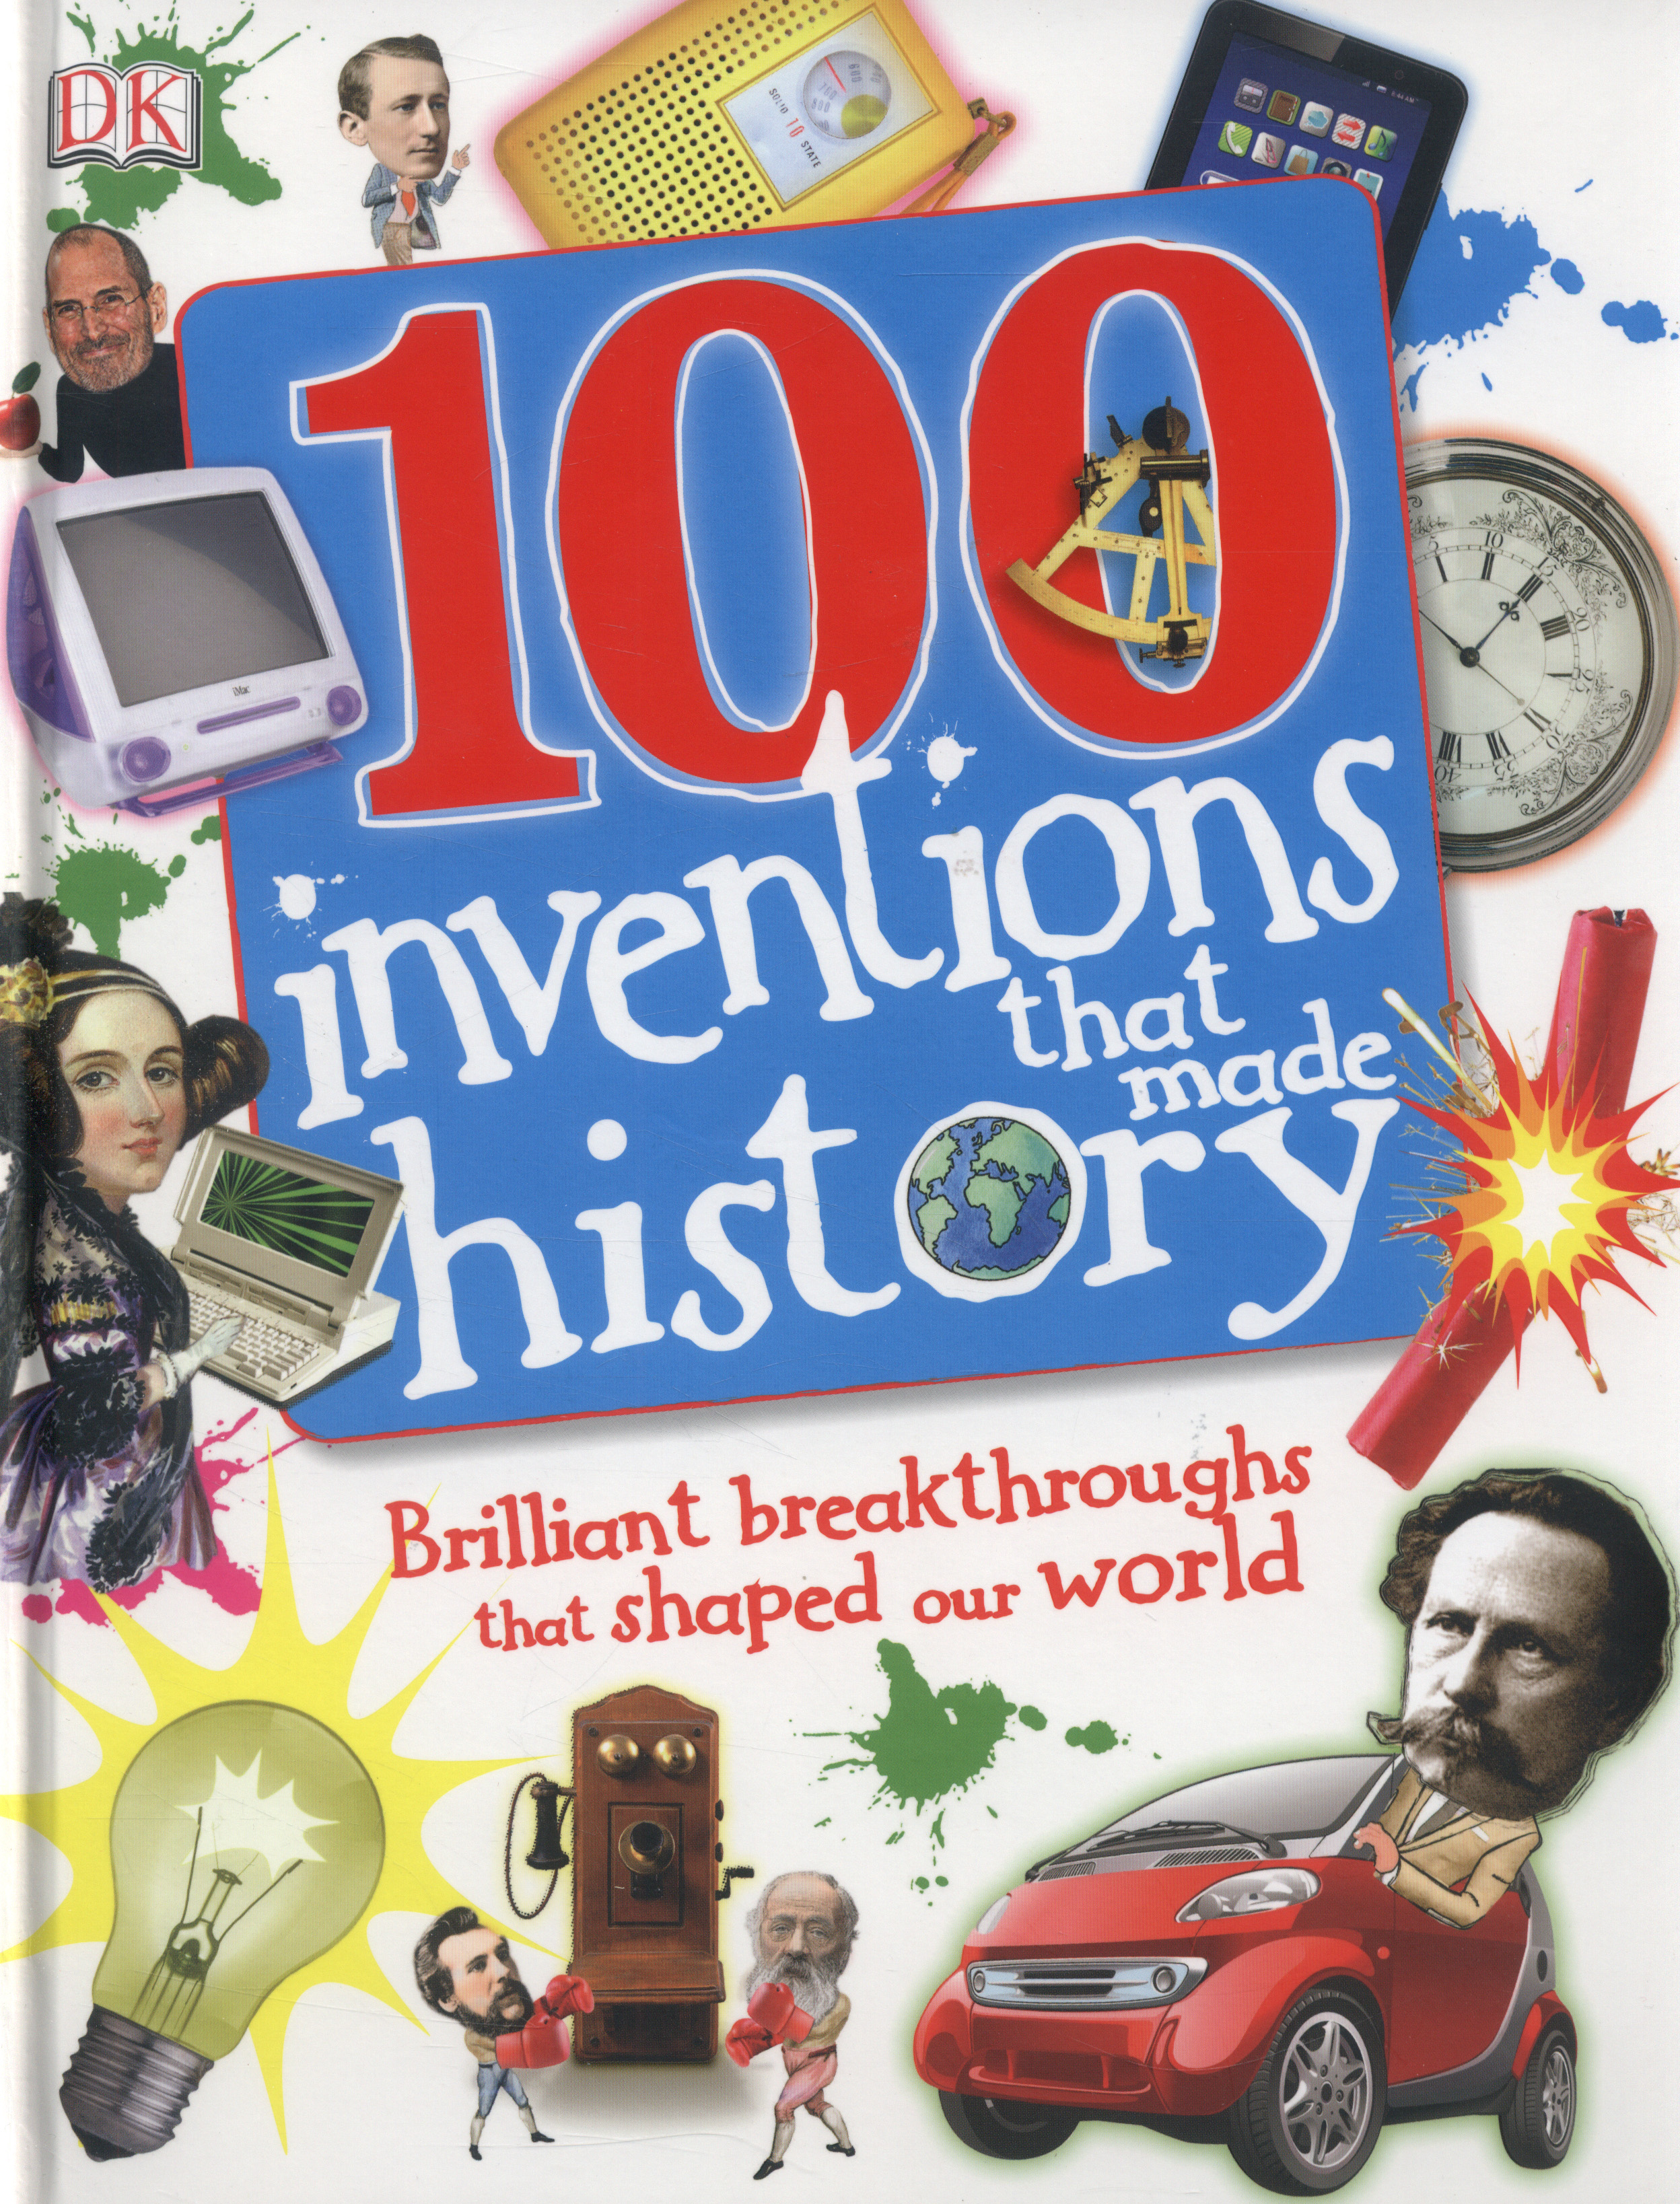 3100 Needed Inventions